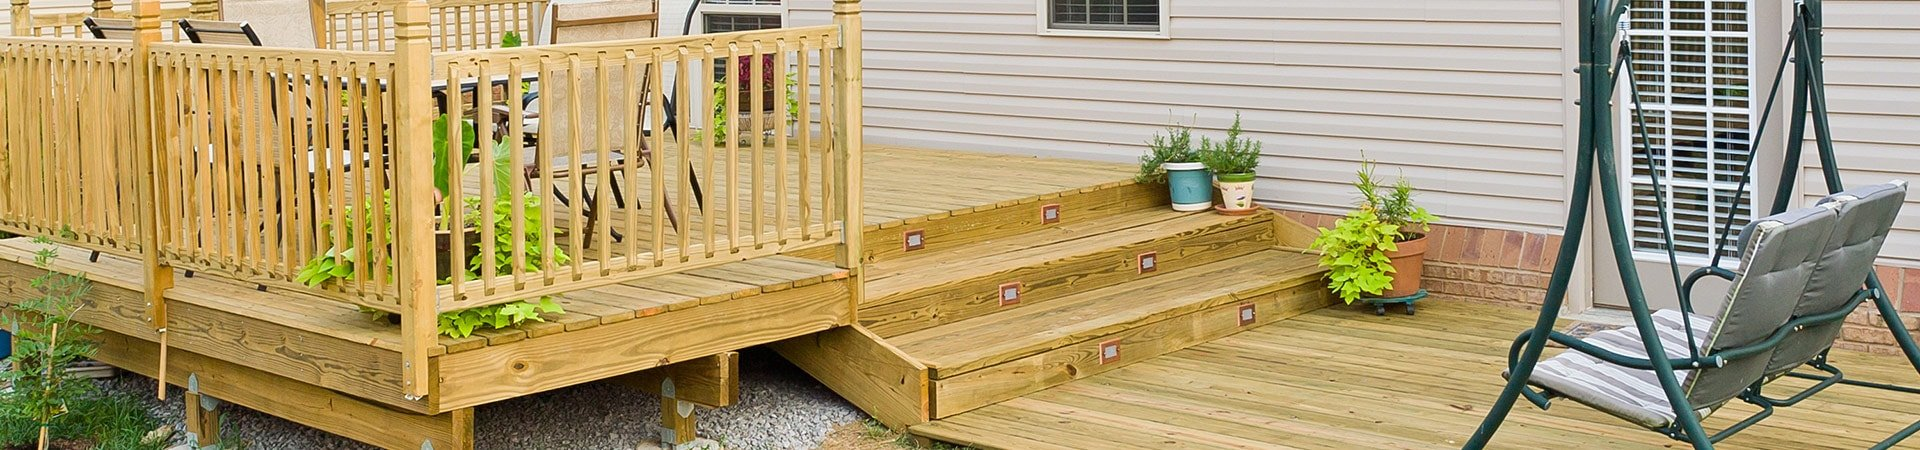 Decks, Patios, and Porches